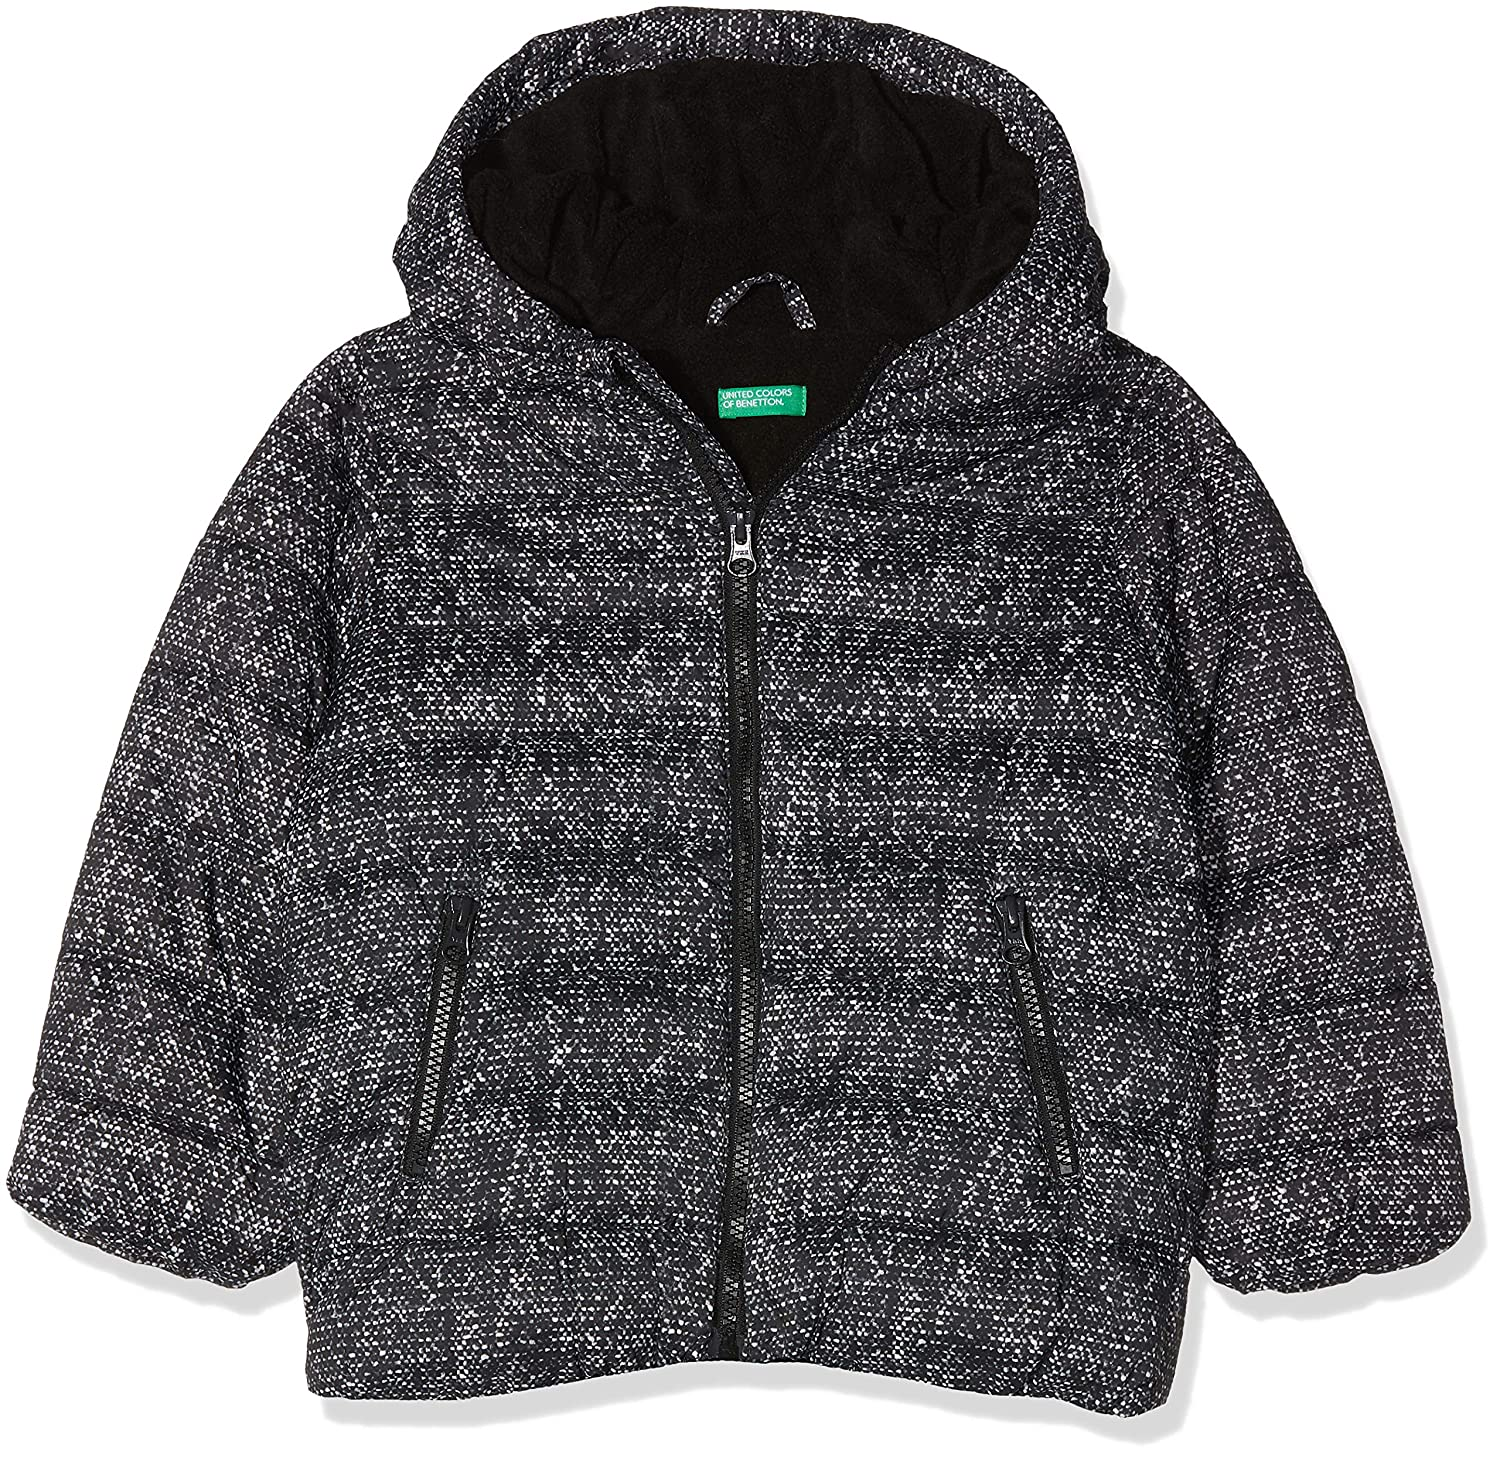 United Colors of Benetton Heavy Jacket Giacca Bambino